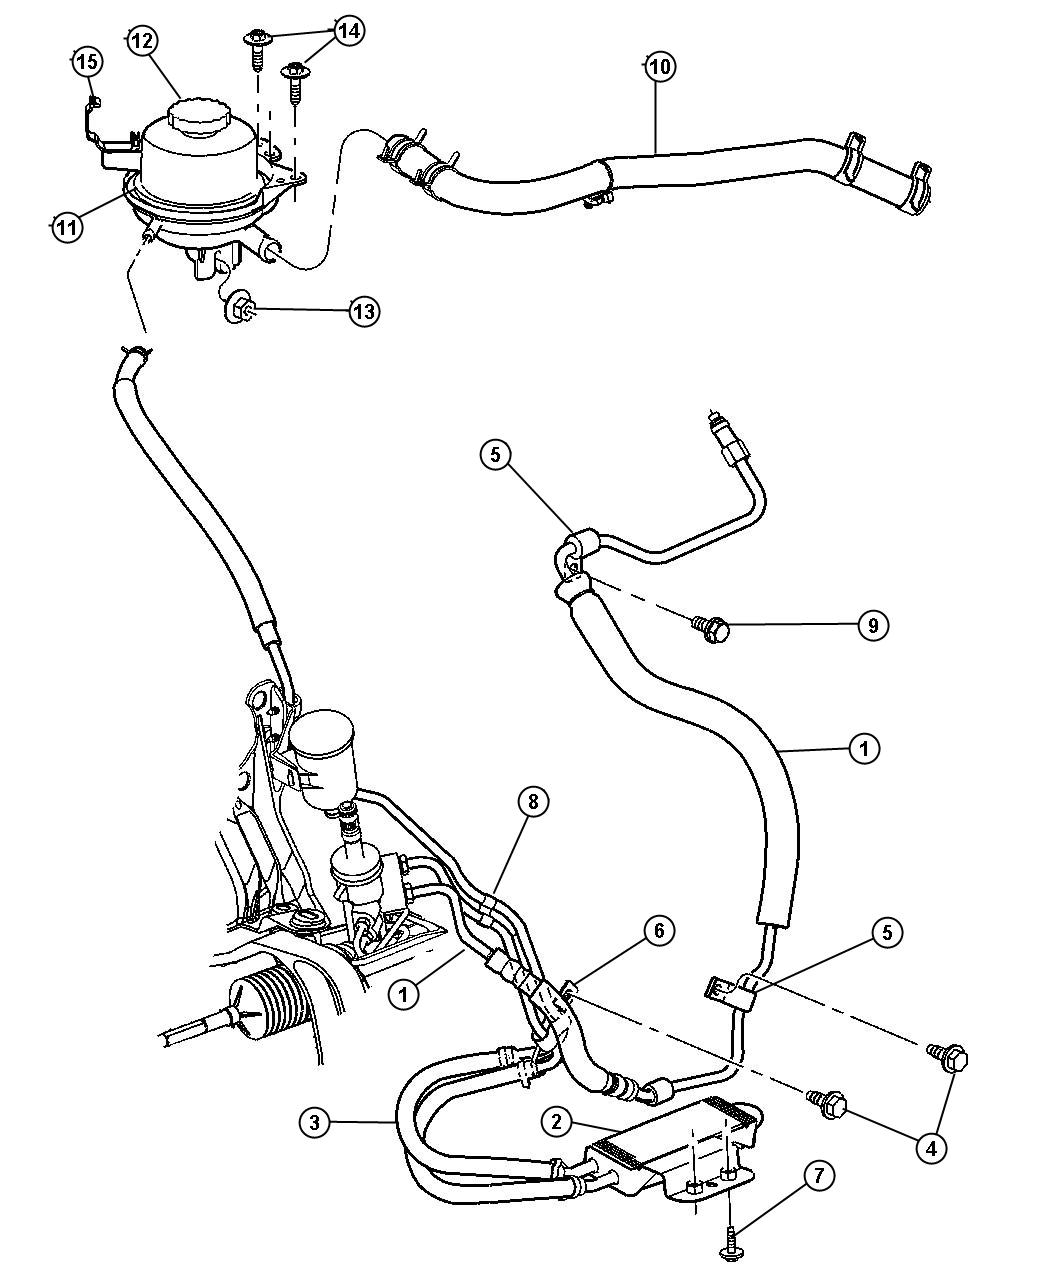 2006 Chrysler Town & Country Hoses, Power Steering, 3.3L-3